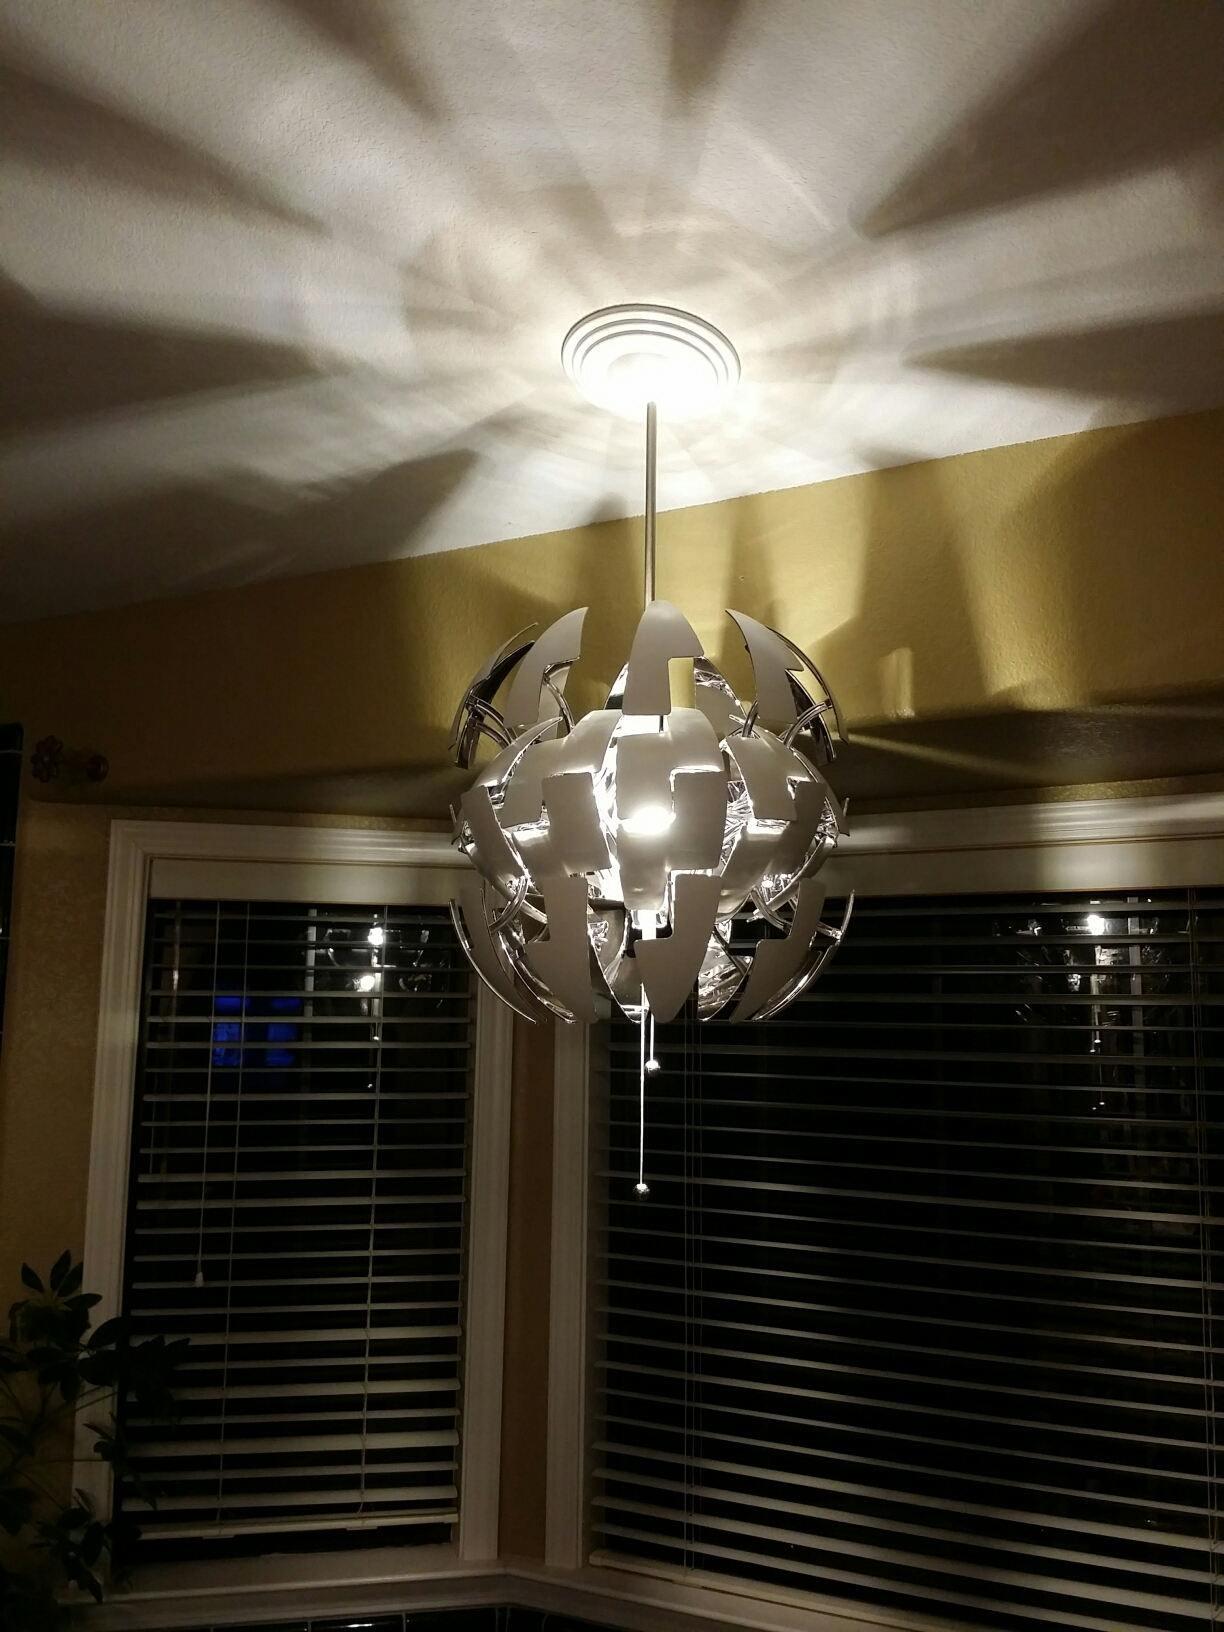 Recessed Can Light Conversion Kit, Recessed Can Lighting, Can Light, Light Conversion kit, R56,